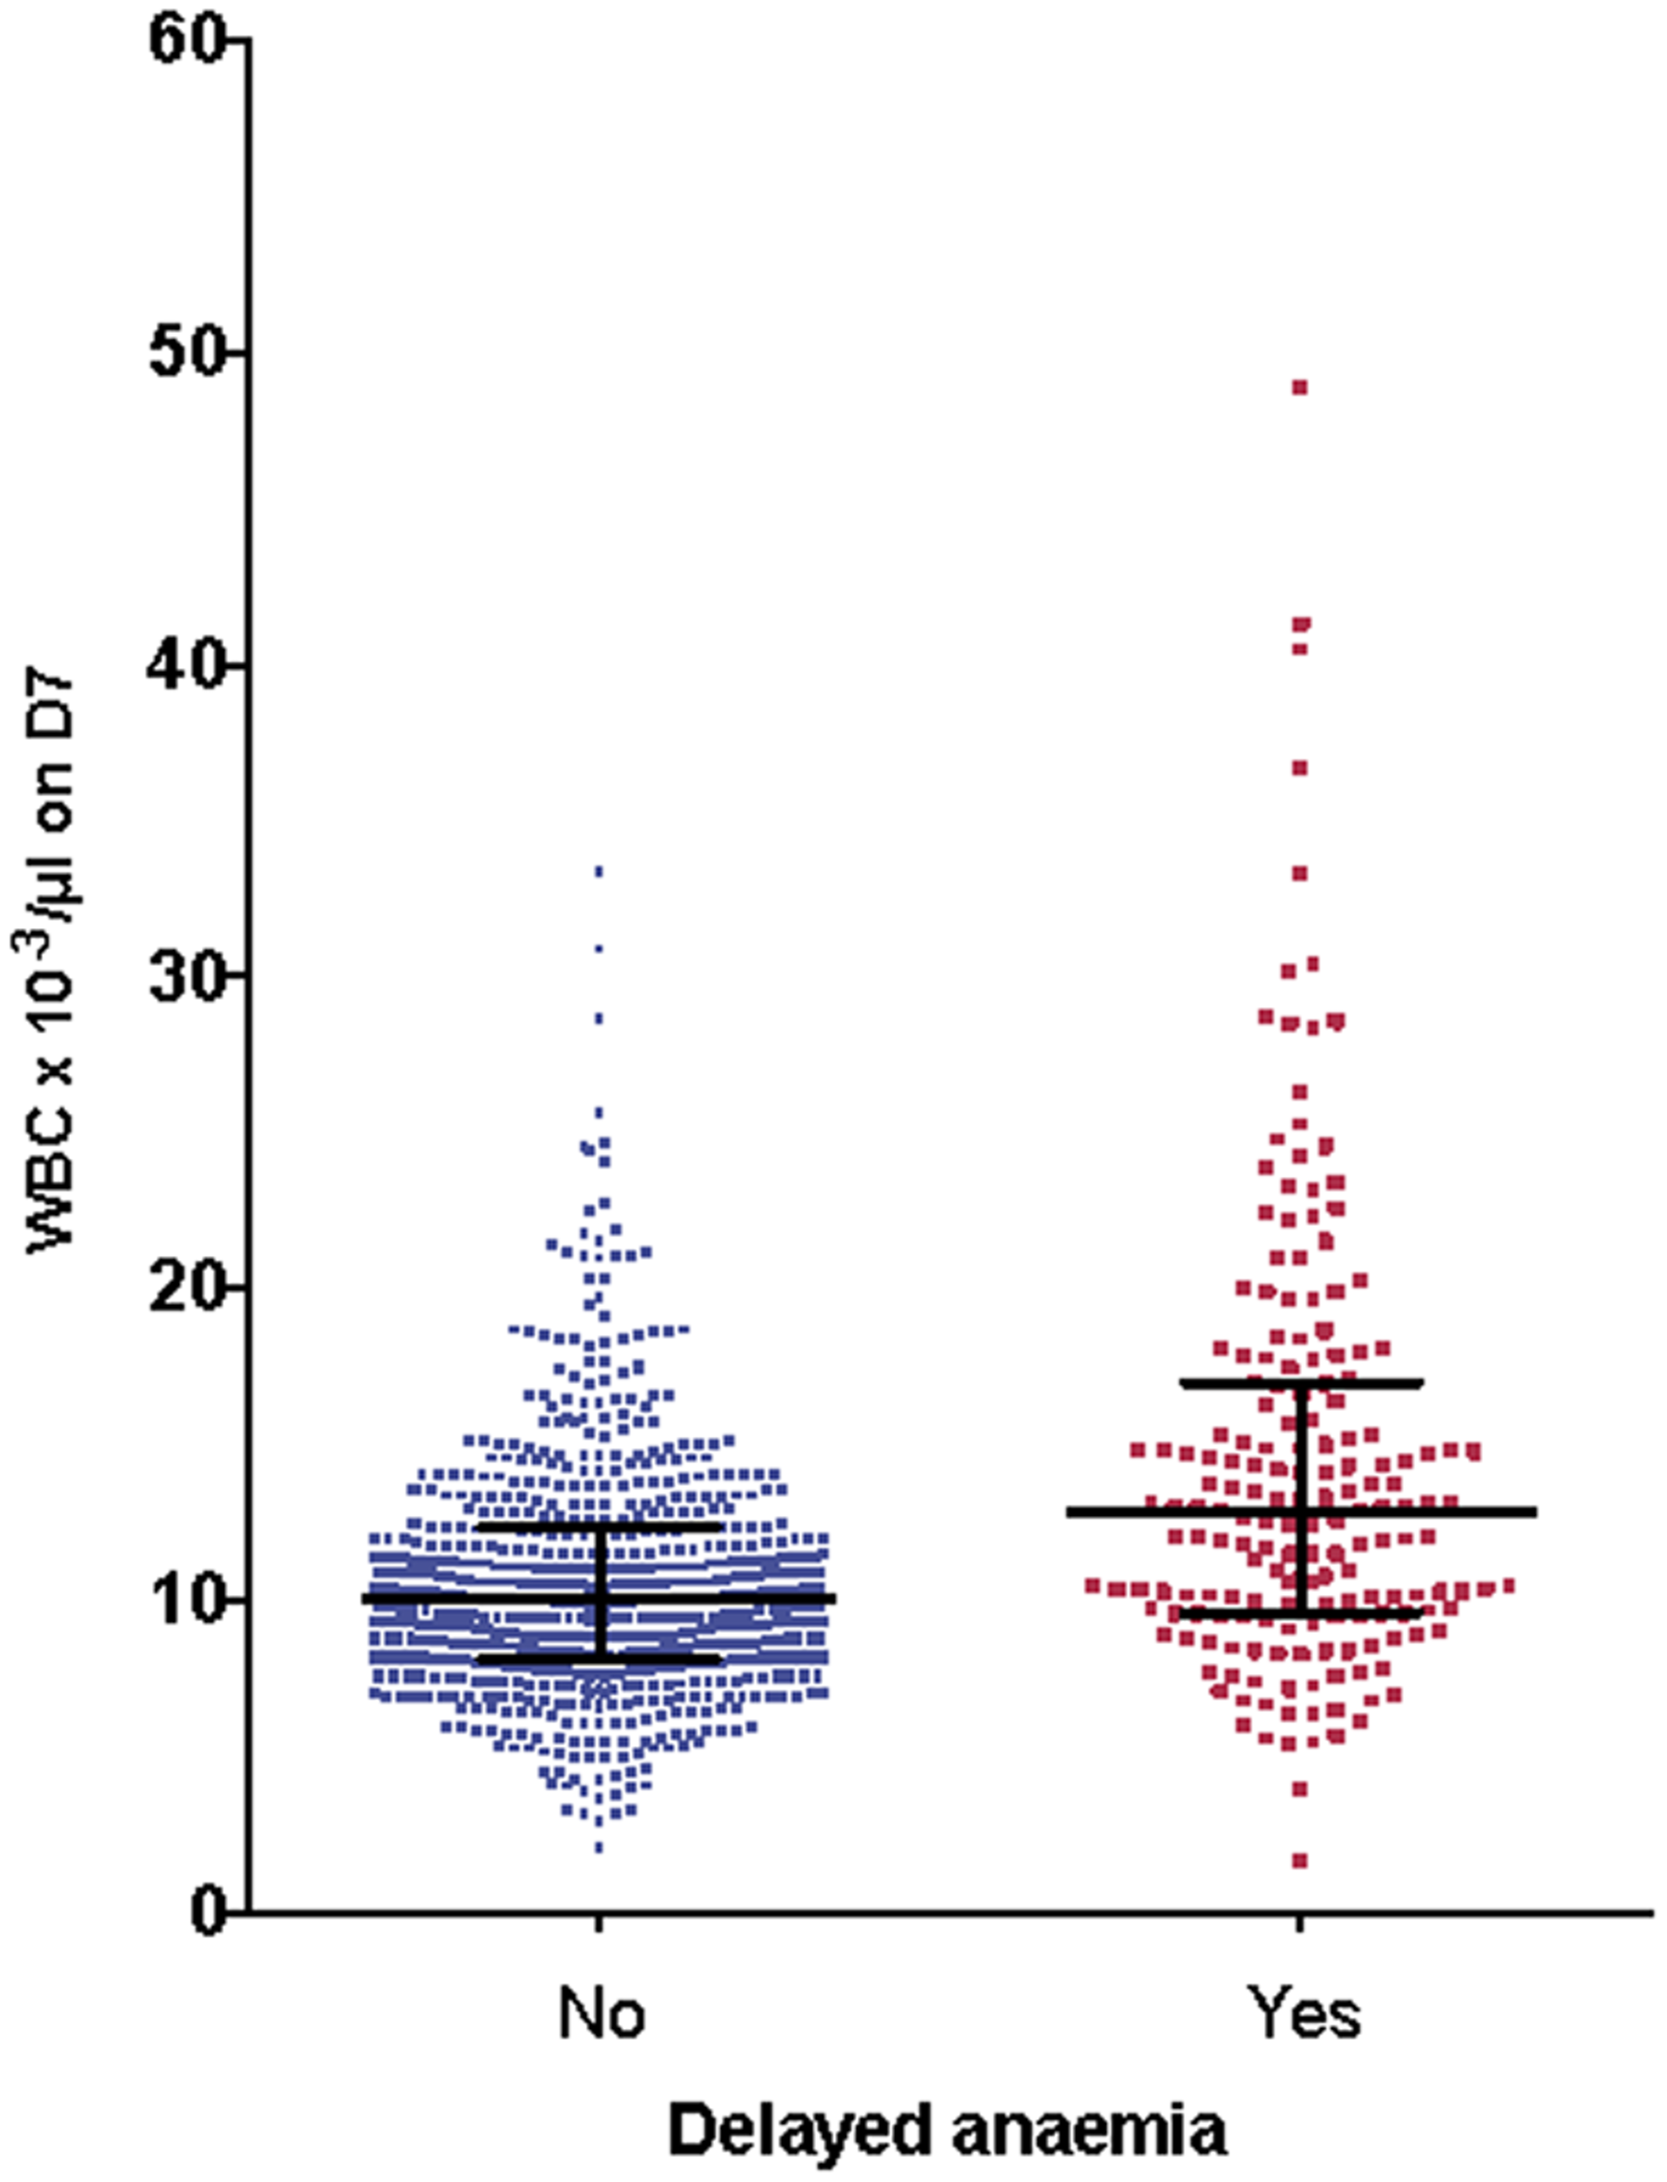 Association between delayed anemia and increased white blood cell count at day 7.